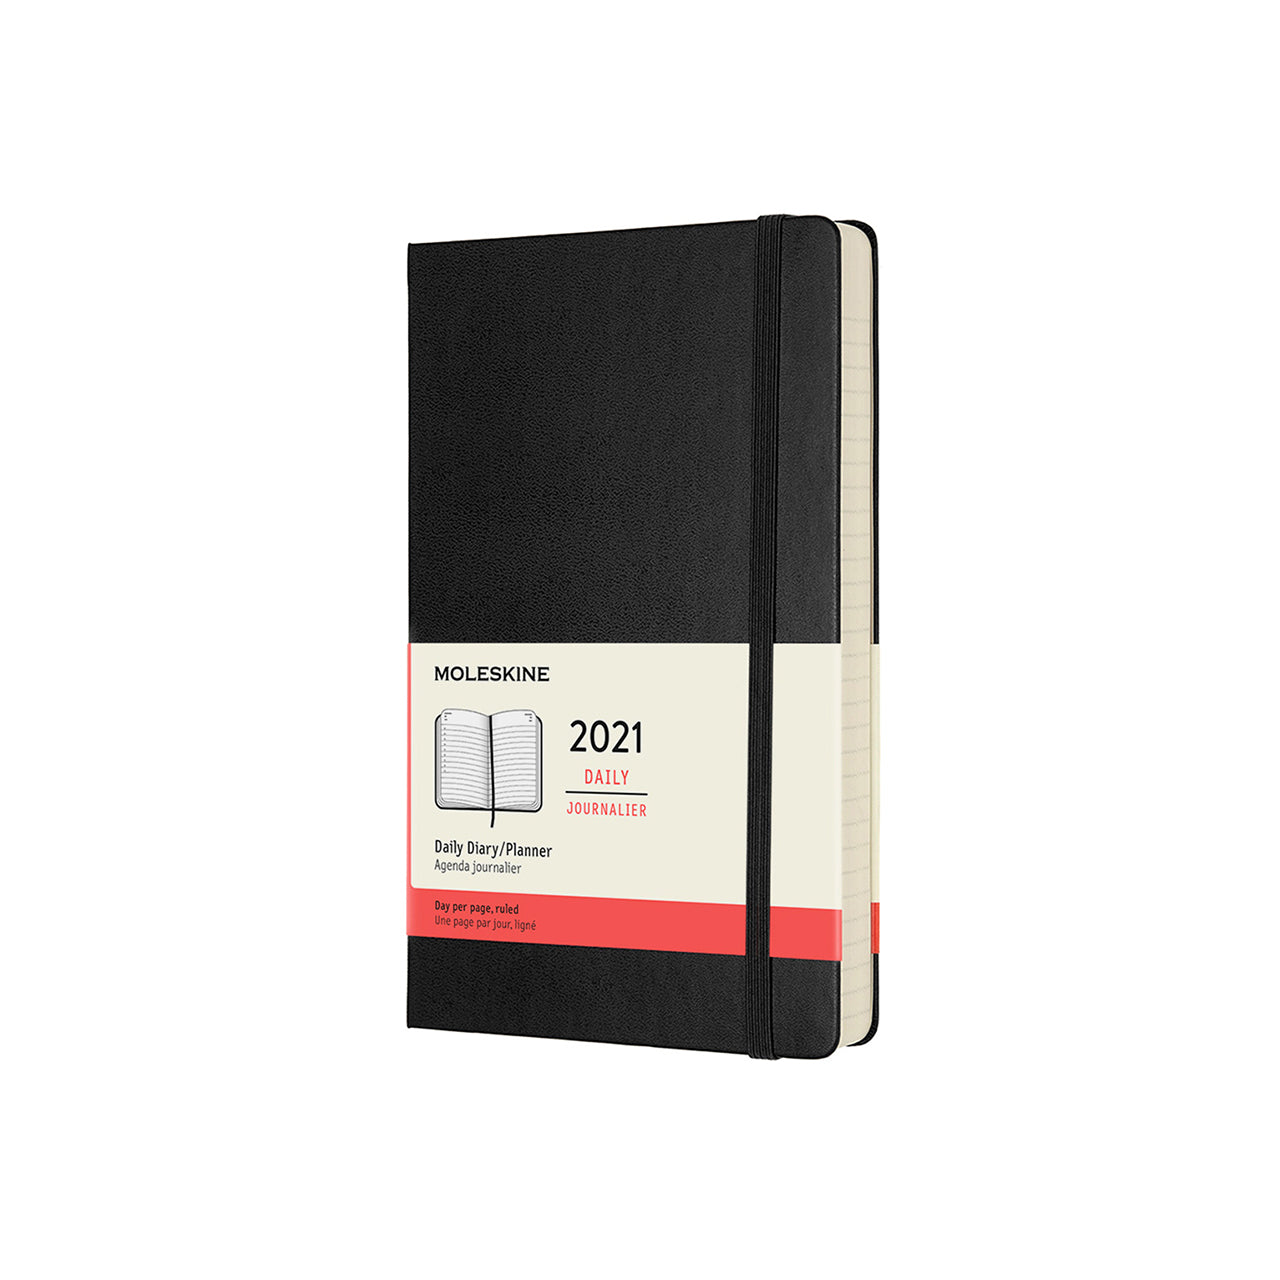 Moleskine - 2021 Hard Cover Diary - Daily - Large - Black